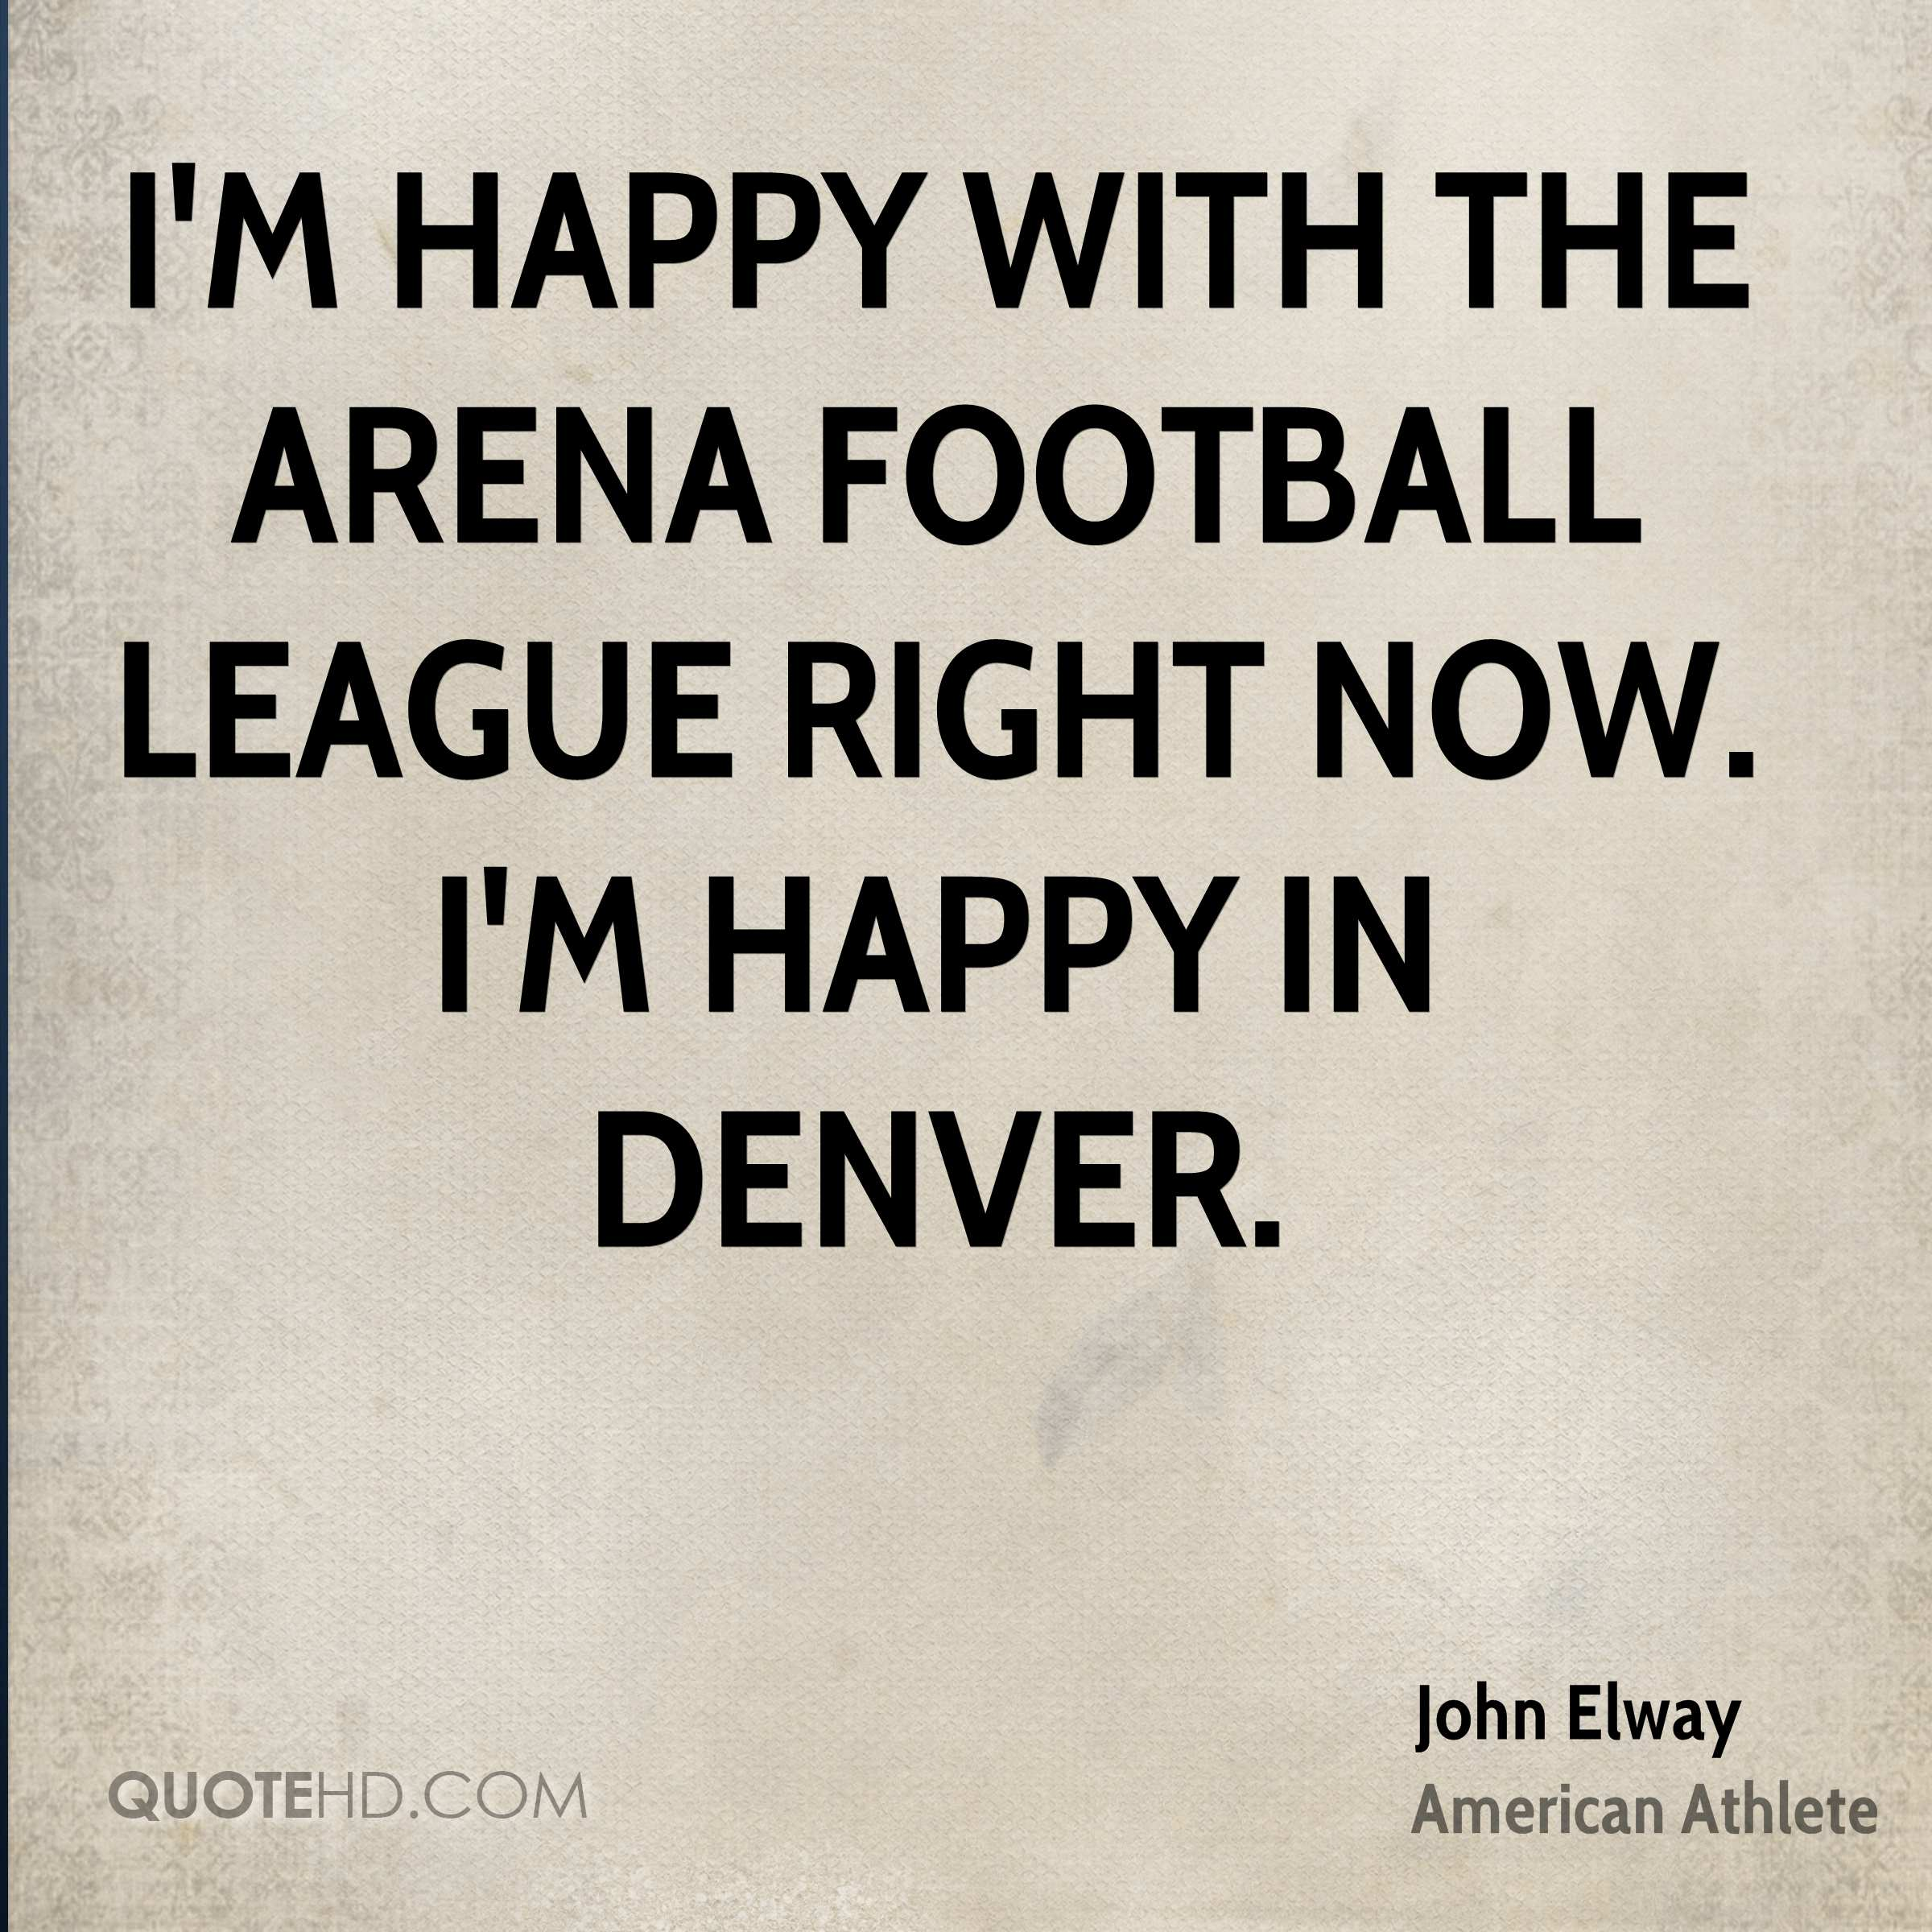 I'm happy with the Arena Football League right now. I'm happy in Denver.